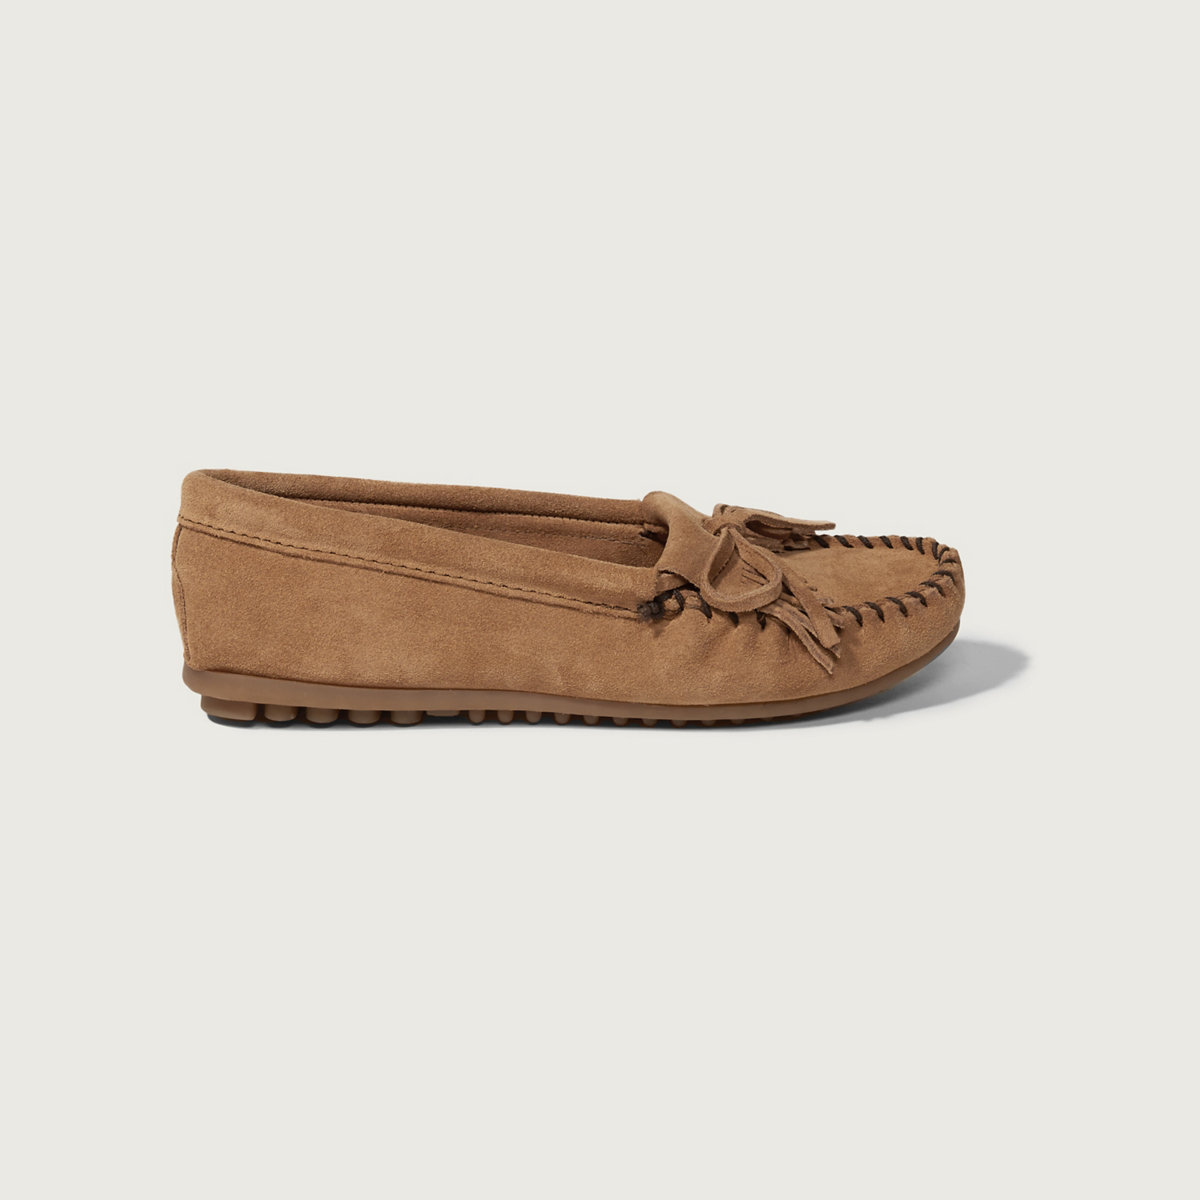 Minnetonka Kilty Shoe